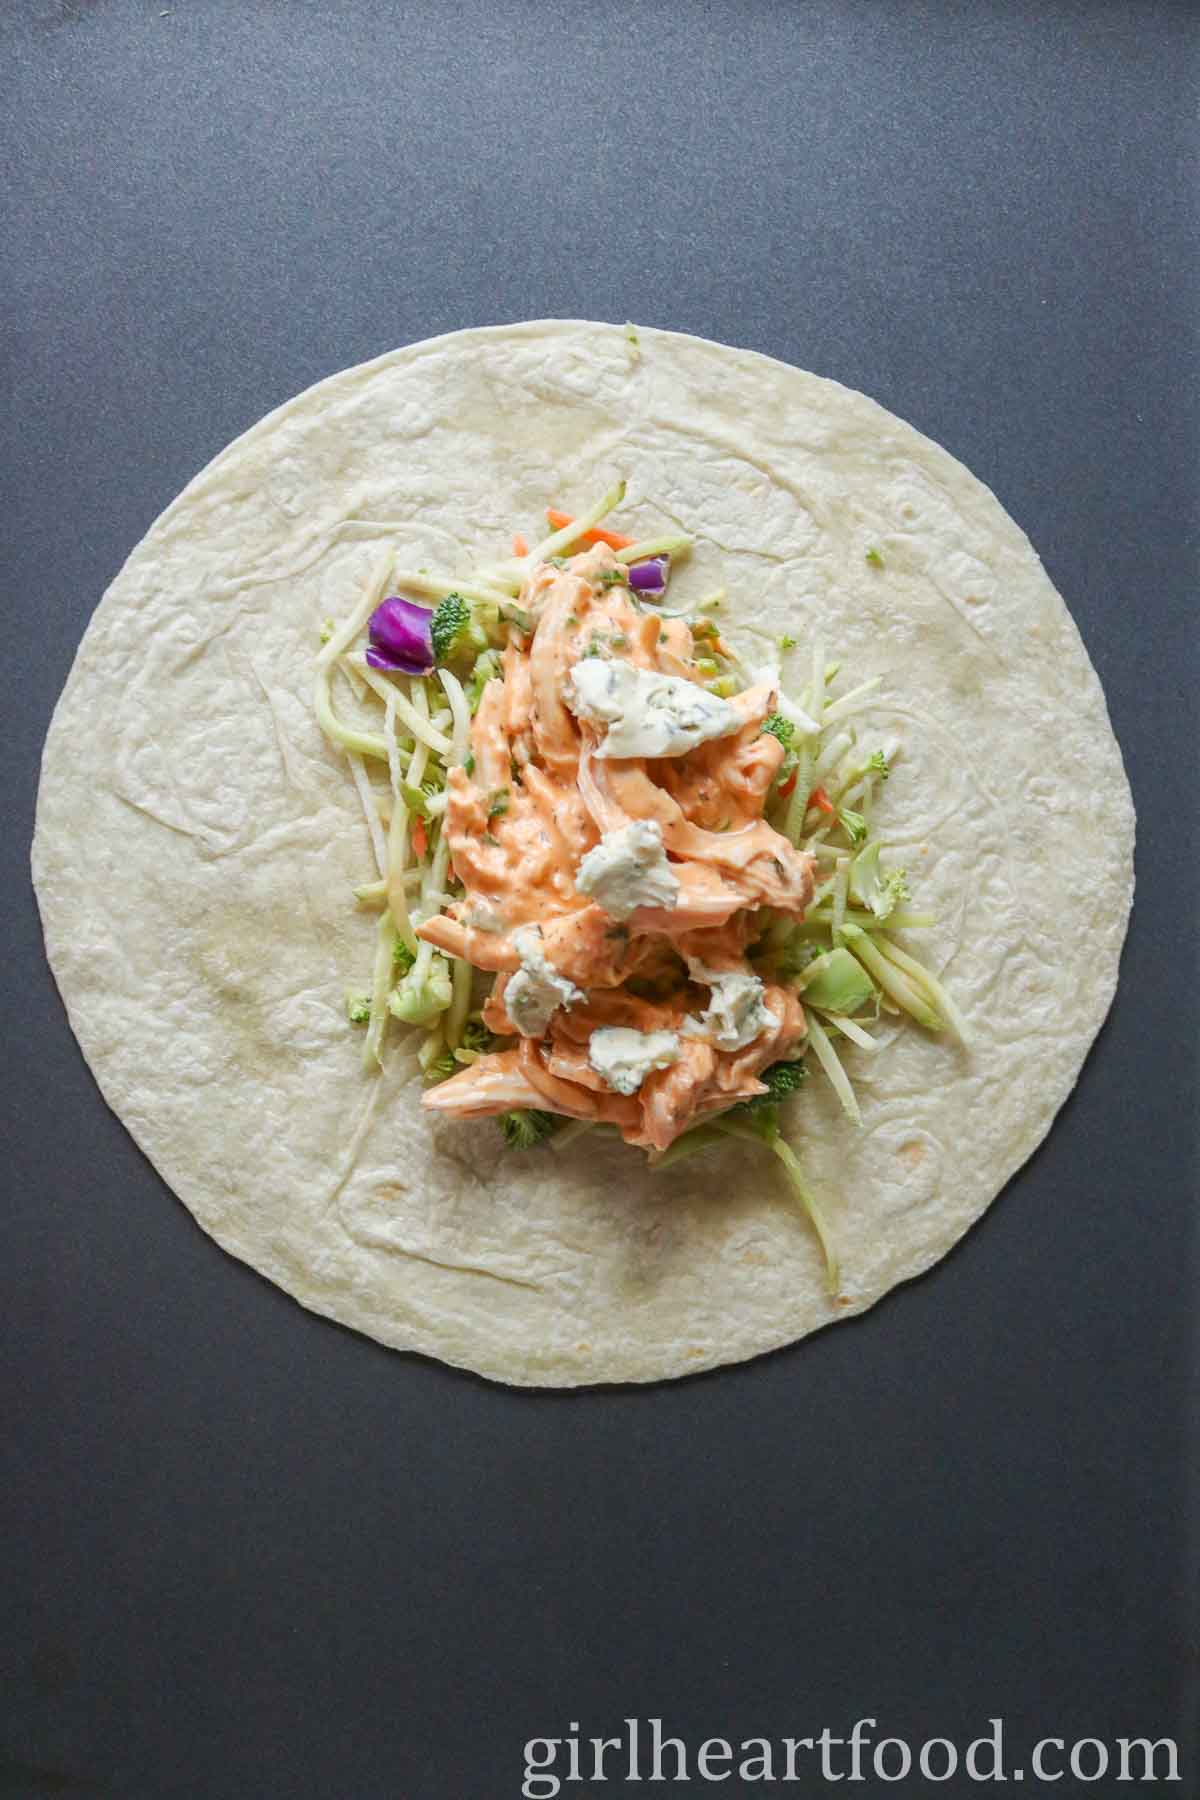 Buffalo chicken wrap with salad mix and blue cheese before being rolled up.